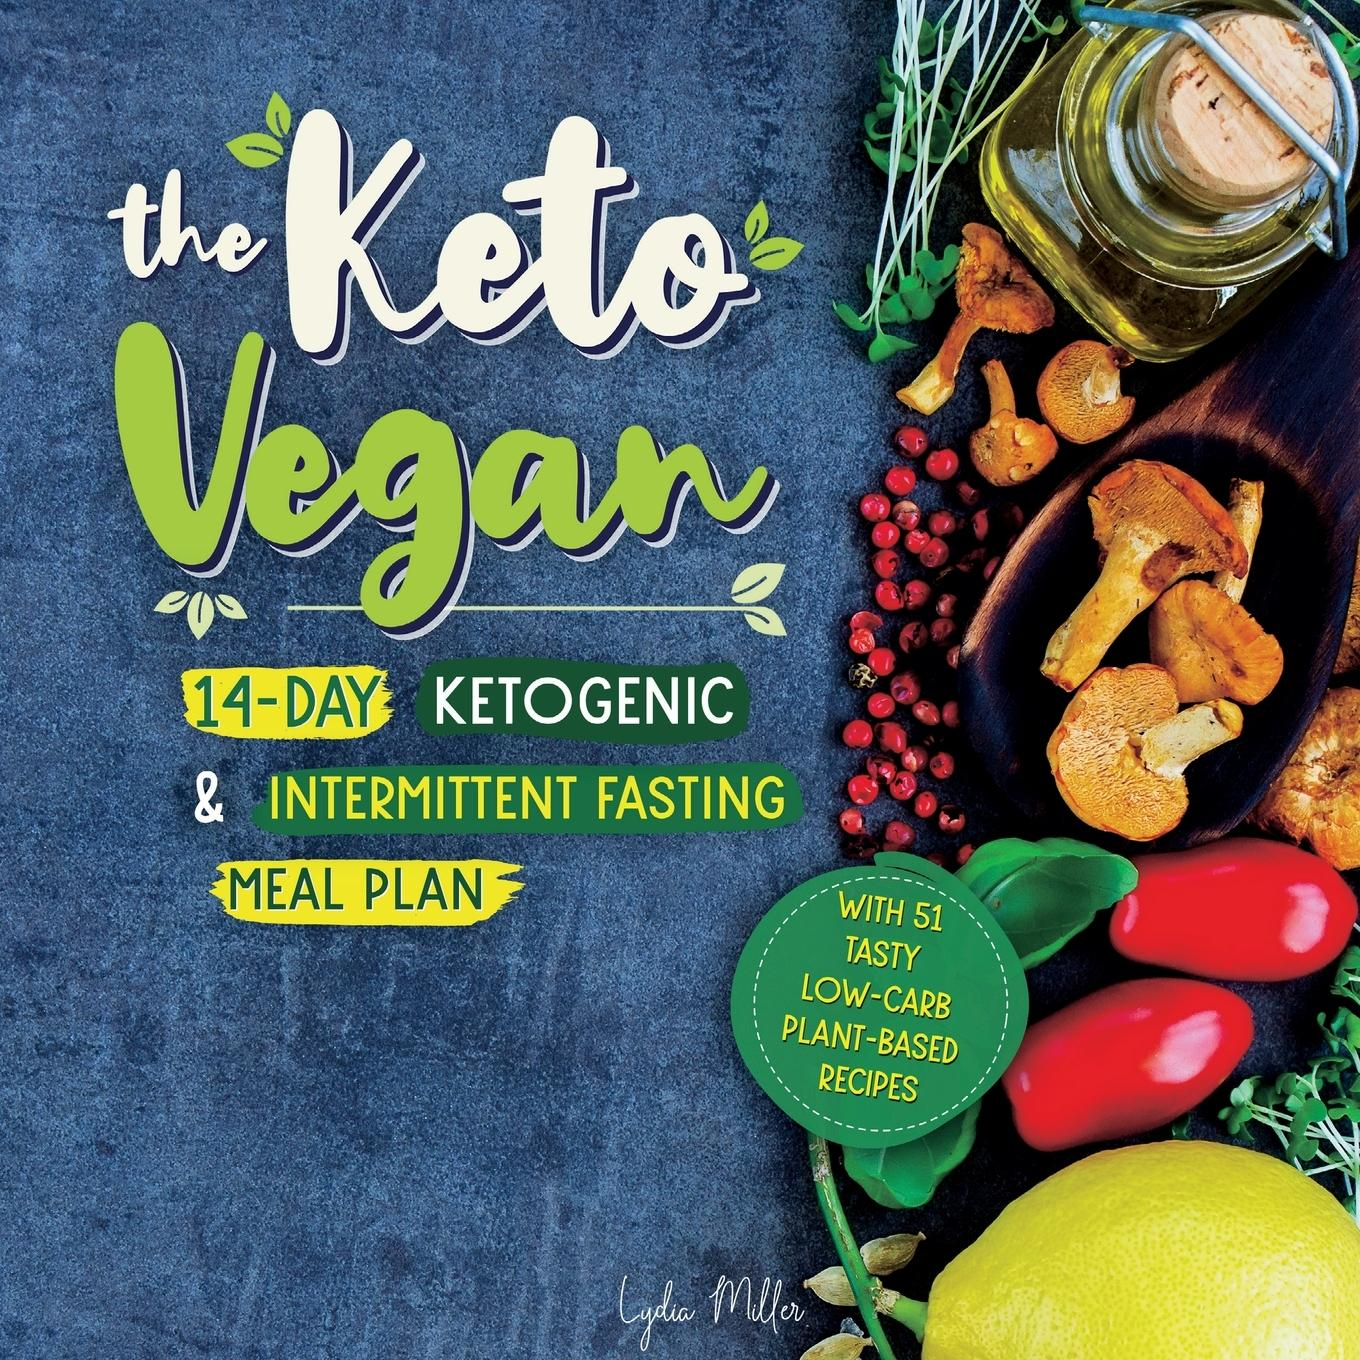 The Keto Vegan  14-Day Ketogenic & Intermittent Fasting Meal Plan (With 51 Tasty Low-Carb Plant-Based Recipes)  Lydia Miller  Taschenbuch  Paperback  Englisch  2019 - Miller, Lydia